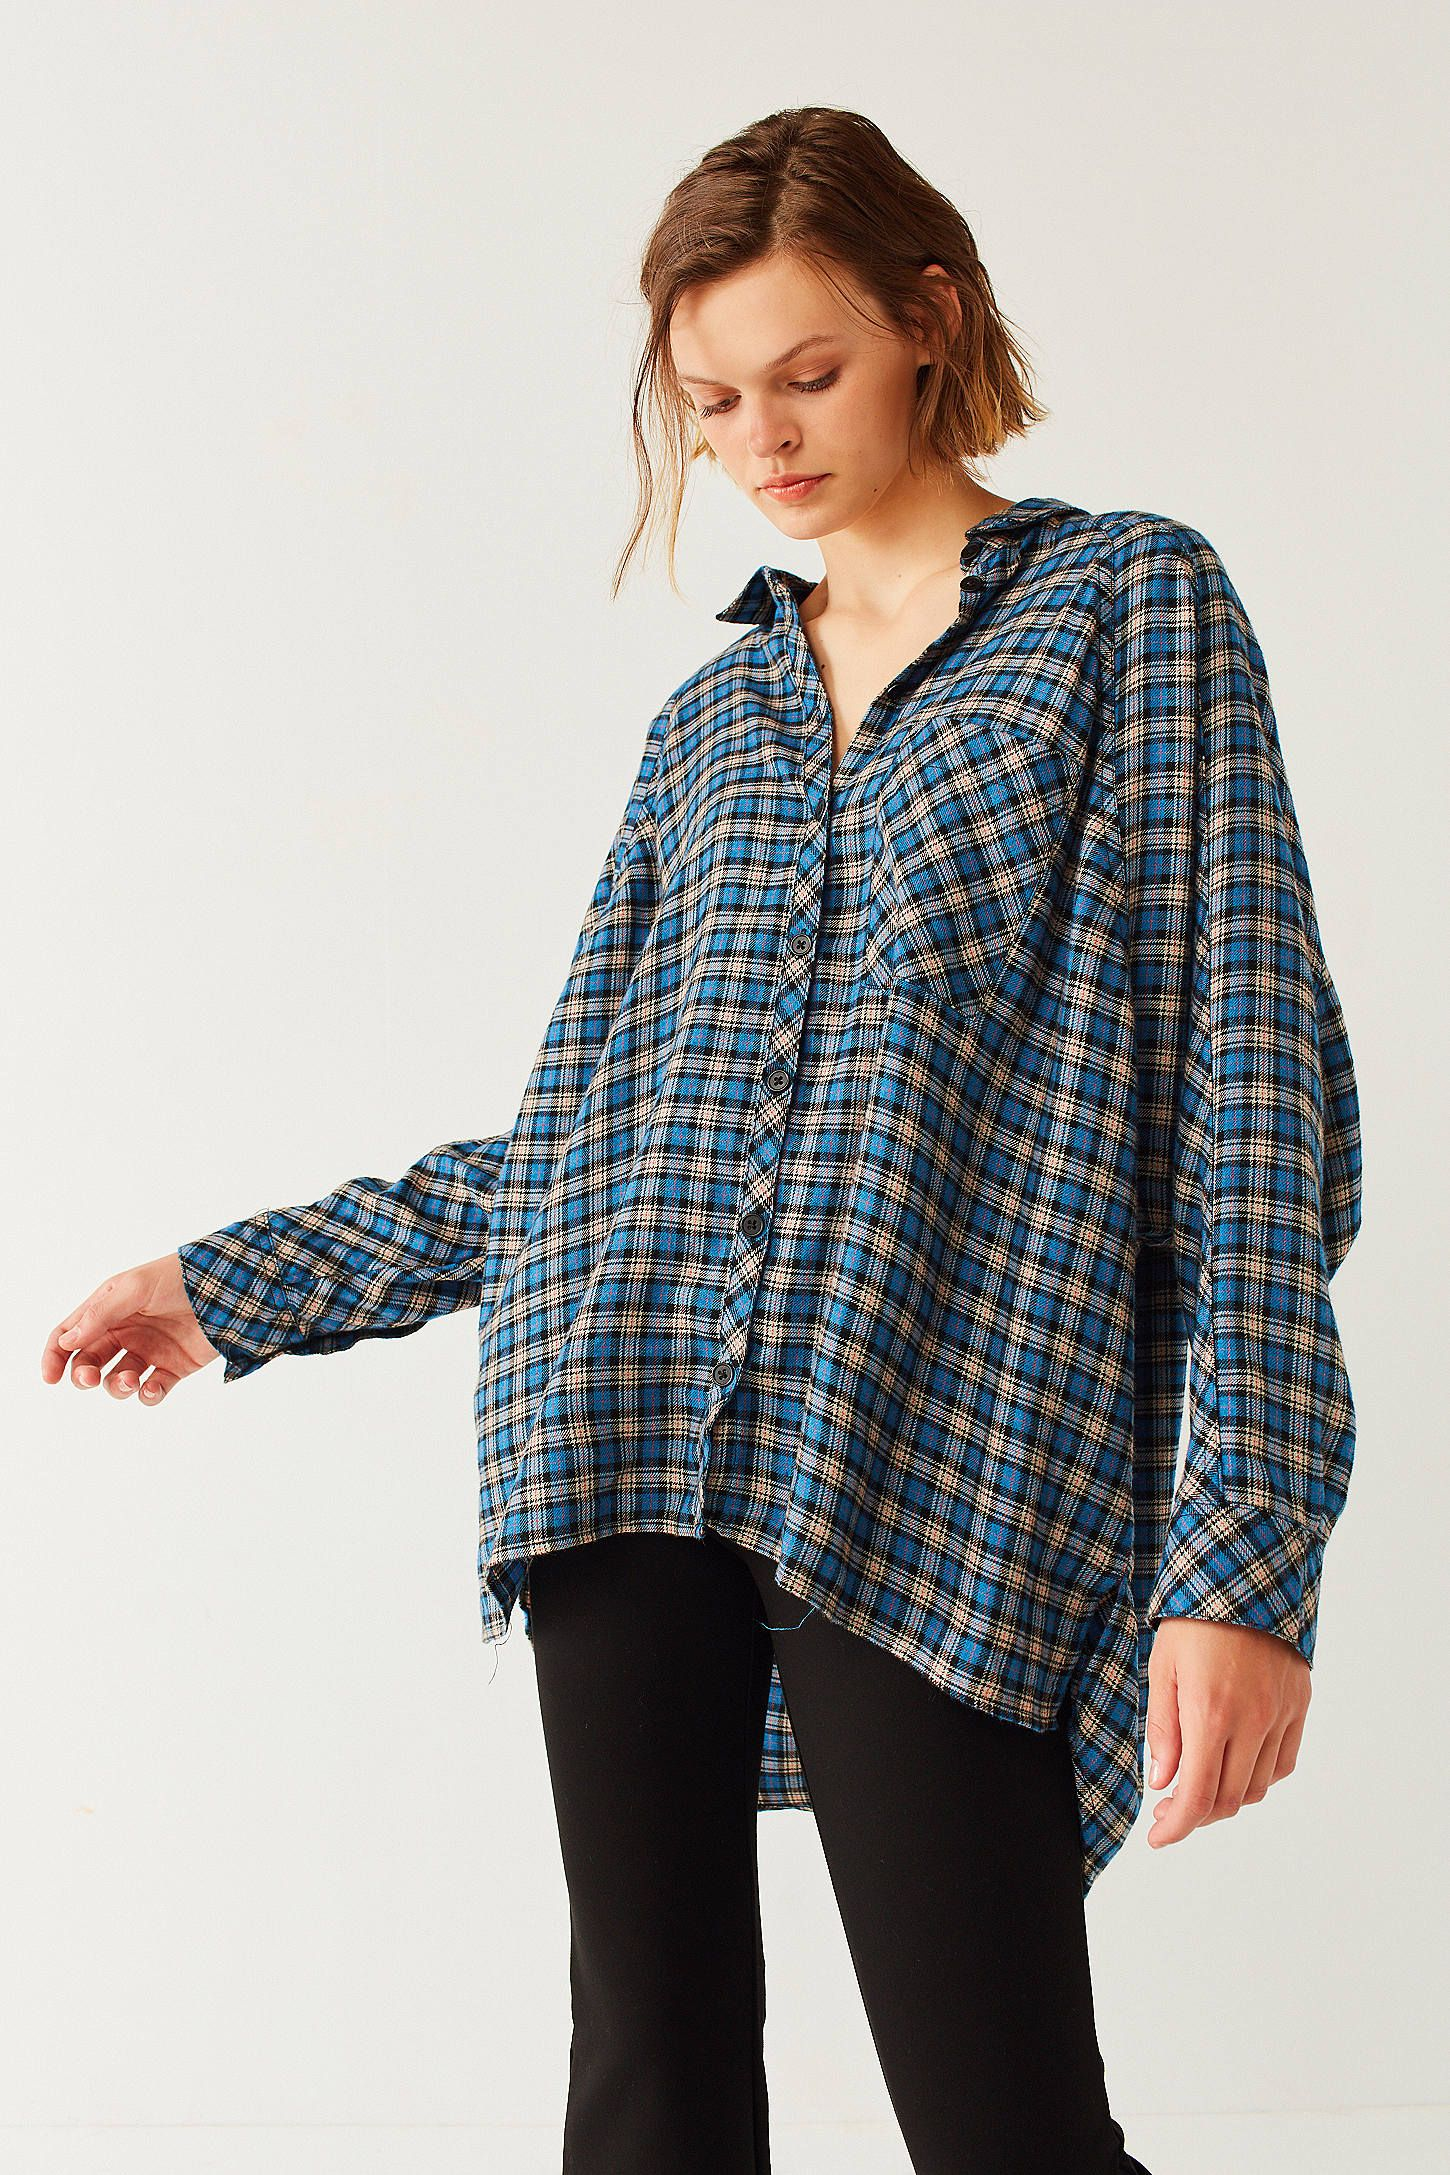 72a6a0a2 Shop BDG Brendan Cozy Flannel Button-Down Shirt at Urban Outfitters today.  We carry all the latest styles, colors and brands for you to choose from  right ...